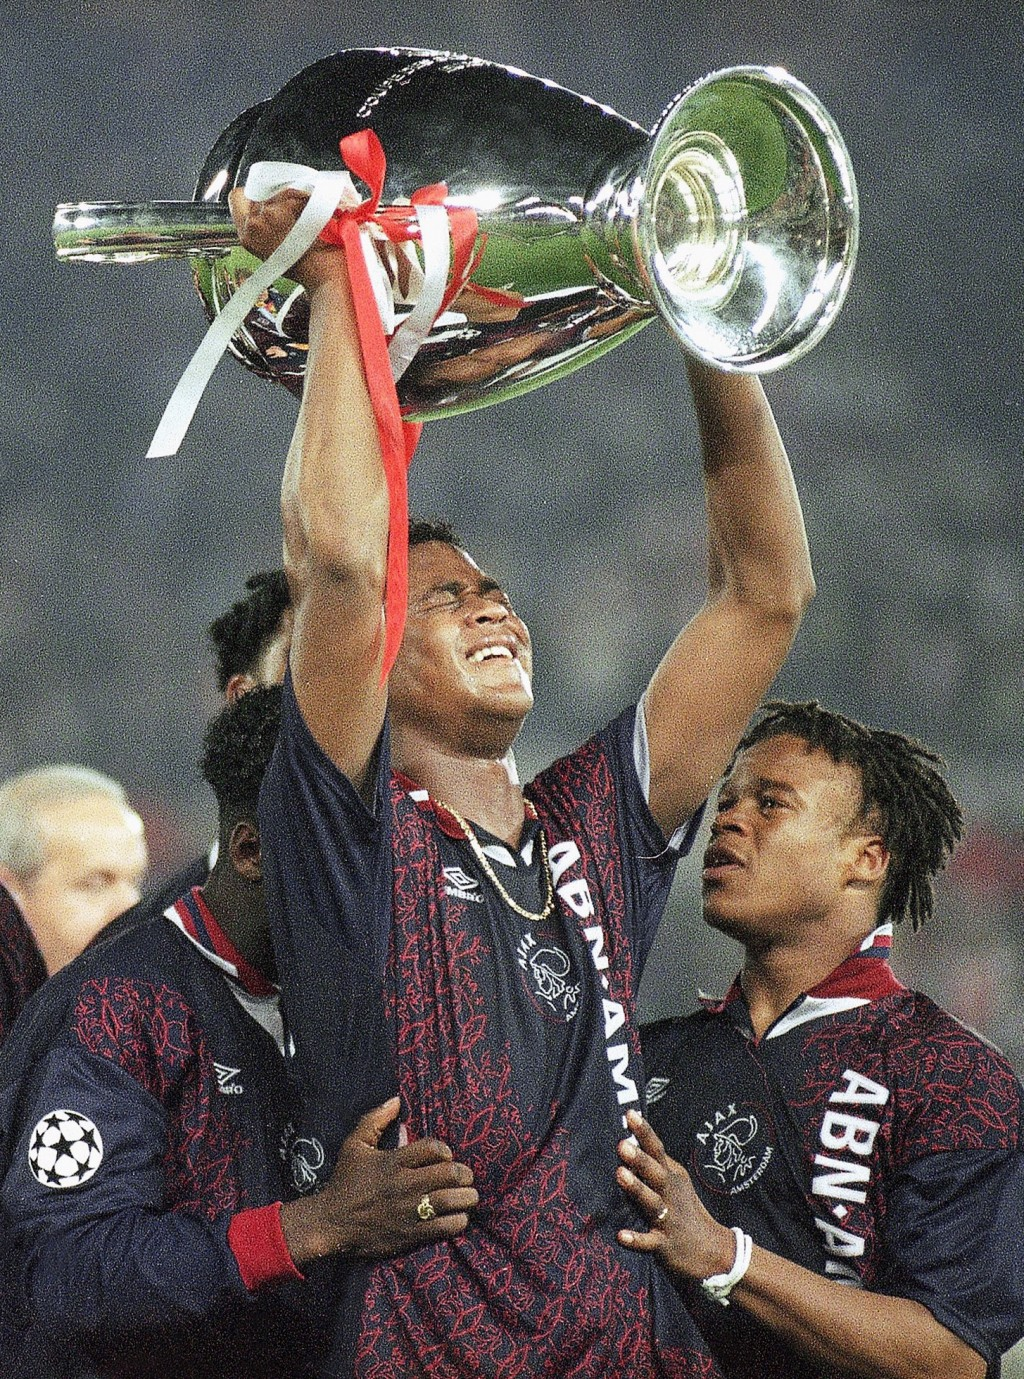 FILE - In this Wednesday, May 24, 1995 file photo, Ajax's Patrick Kluivert, center, who scored the only goal of the match holds the trophy in joy afte